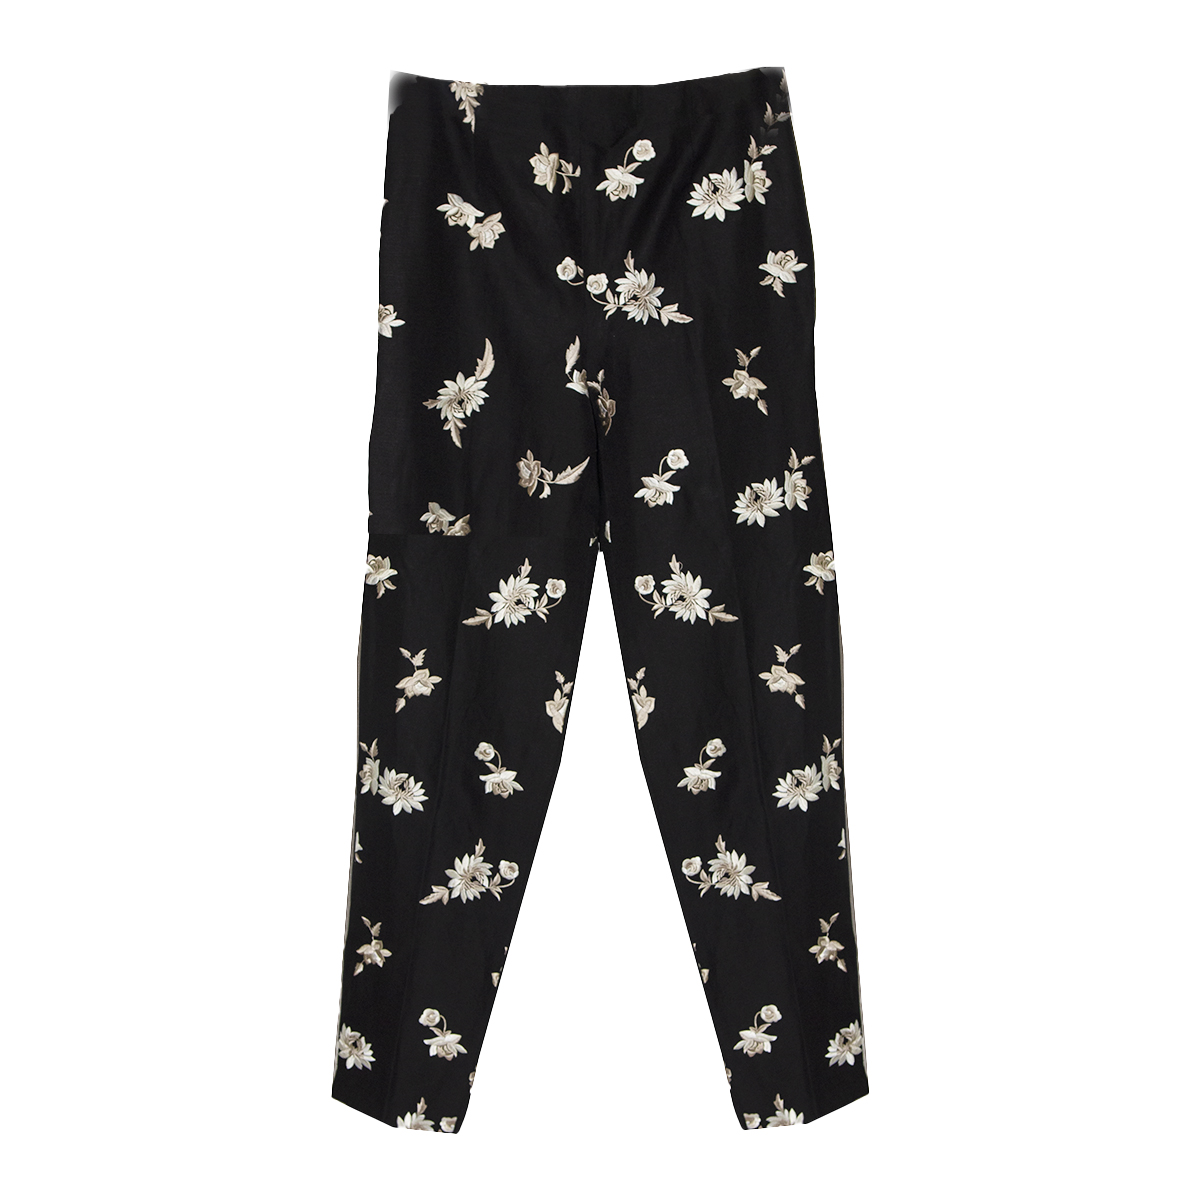 Dana Buckman Evening Pants